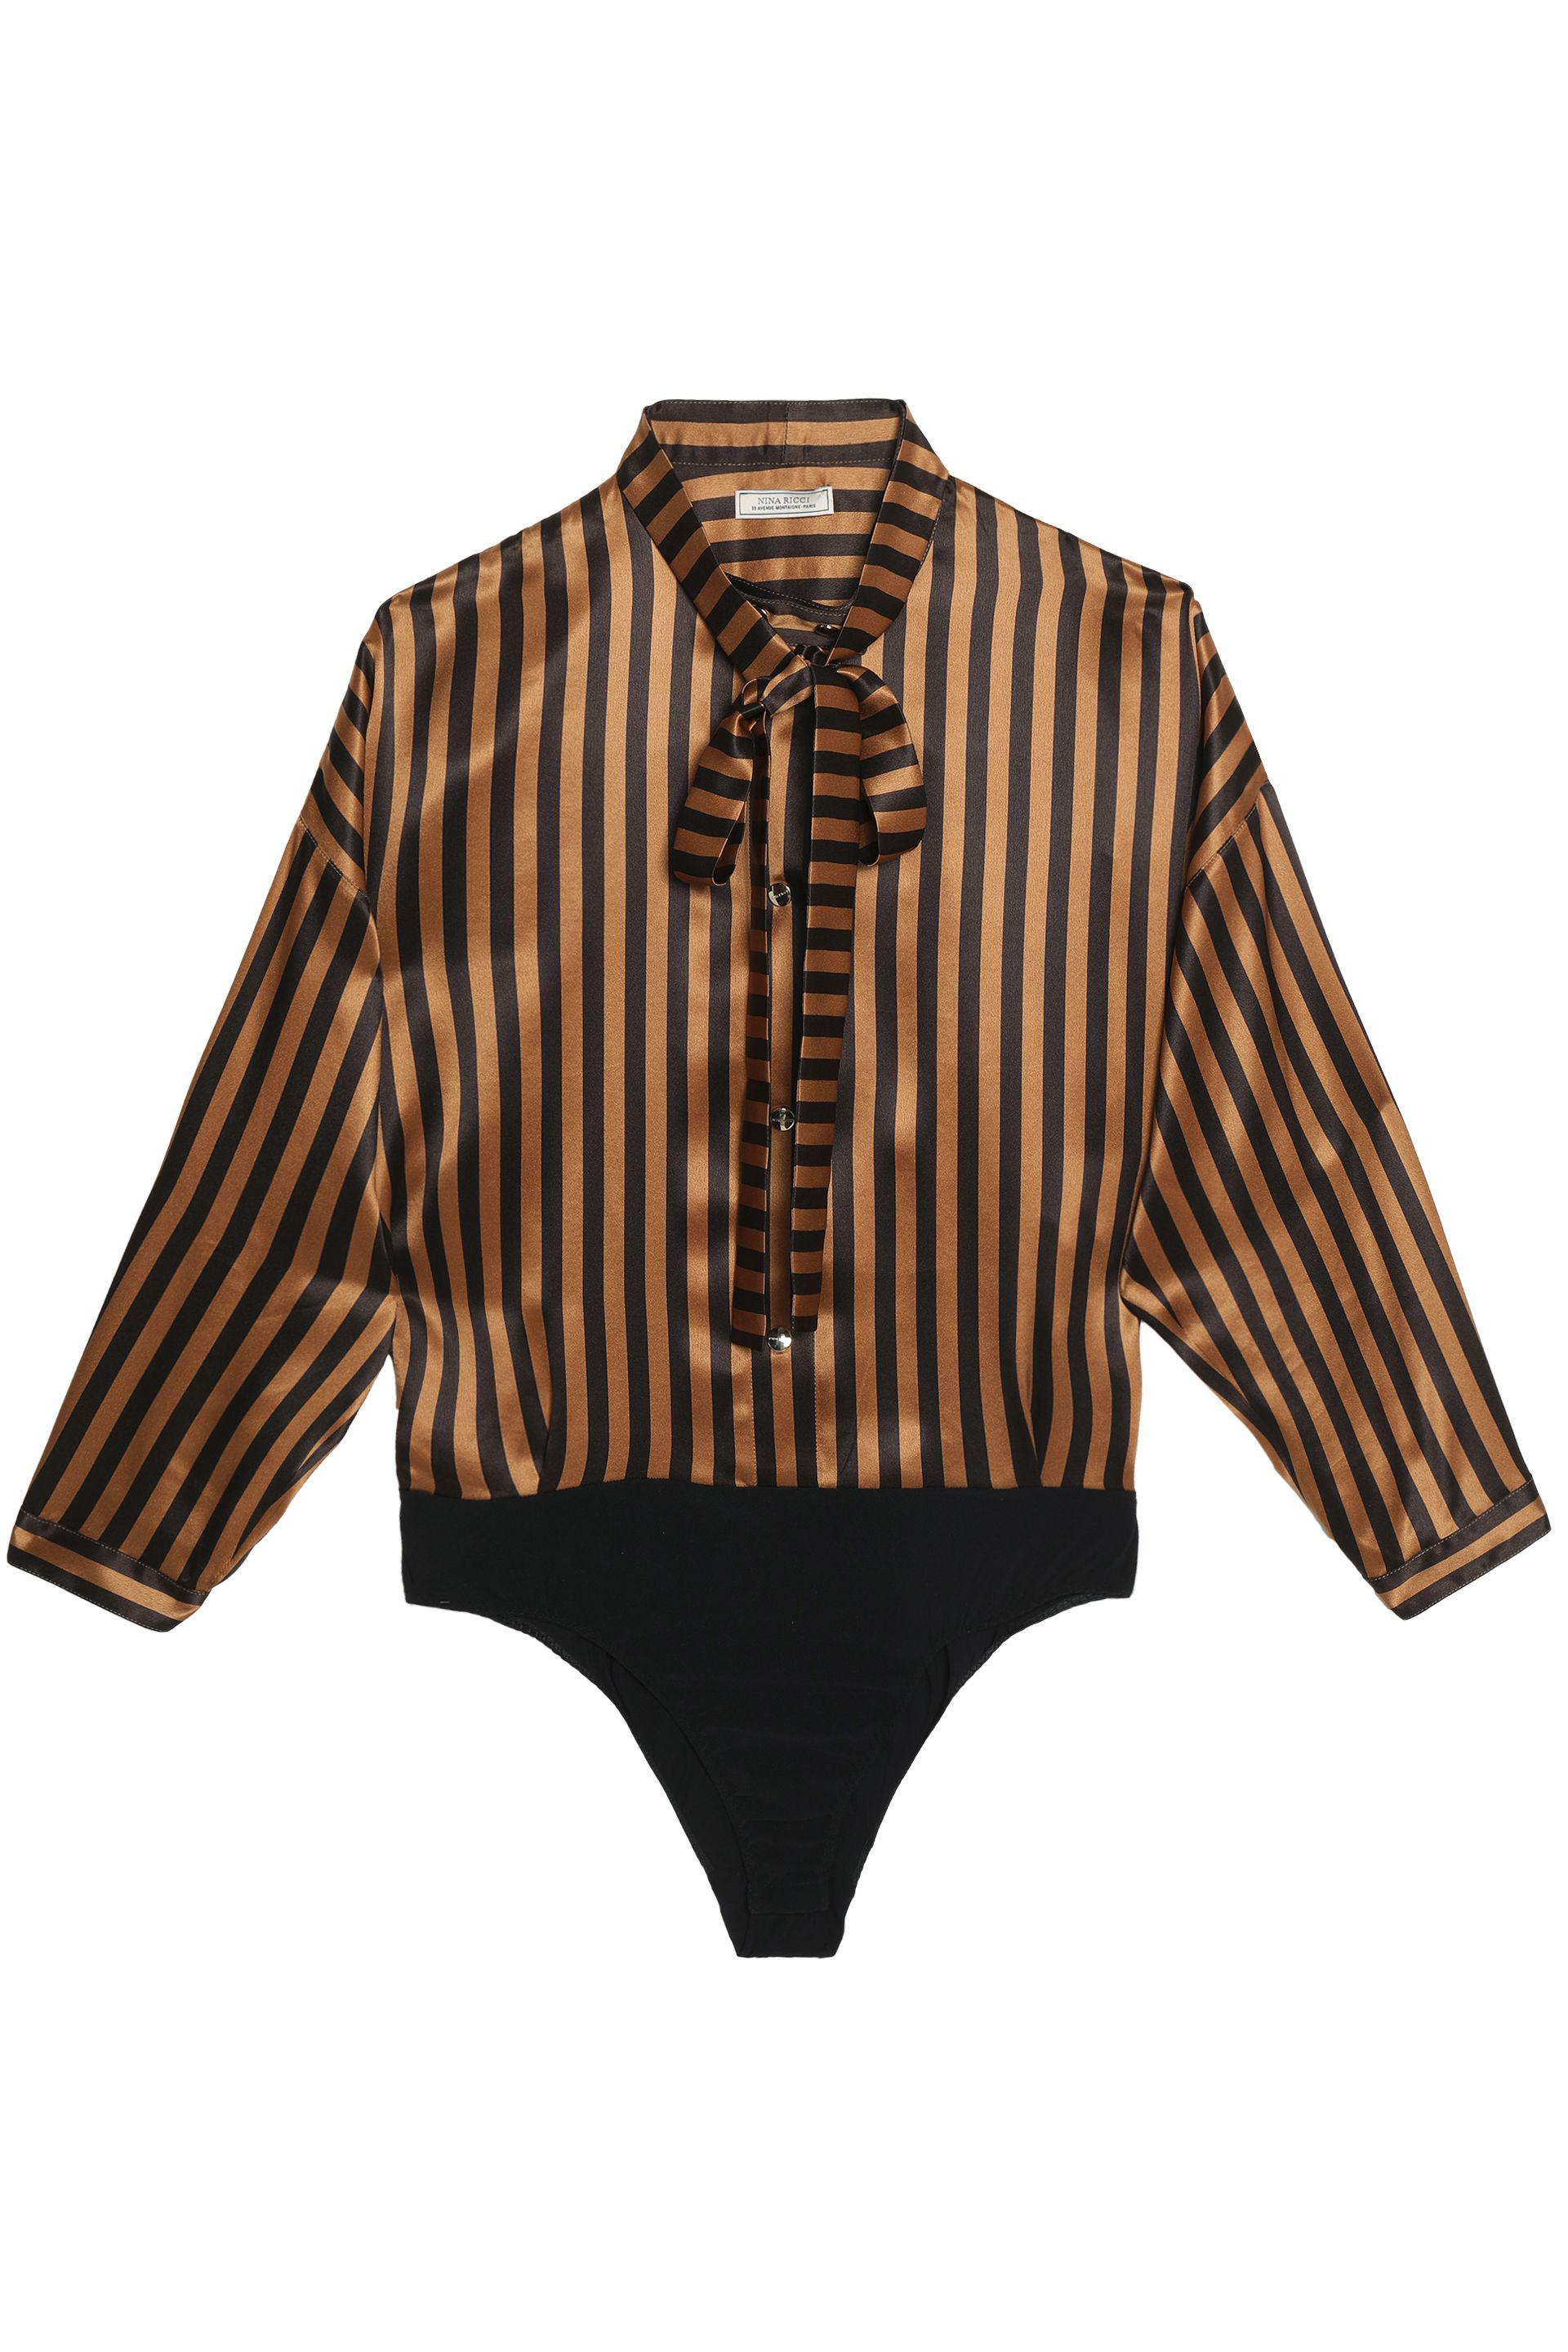 Nina Ricci Woman Pussy-bow Striped Silk-satin Shirt Violet Size 40 Nina Ricci Best Buy Cheap Sale 2018 New Free Shipping Pick A Best Buy Cheap Shop Offer Free Shipping Best Prices yKFca